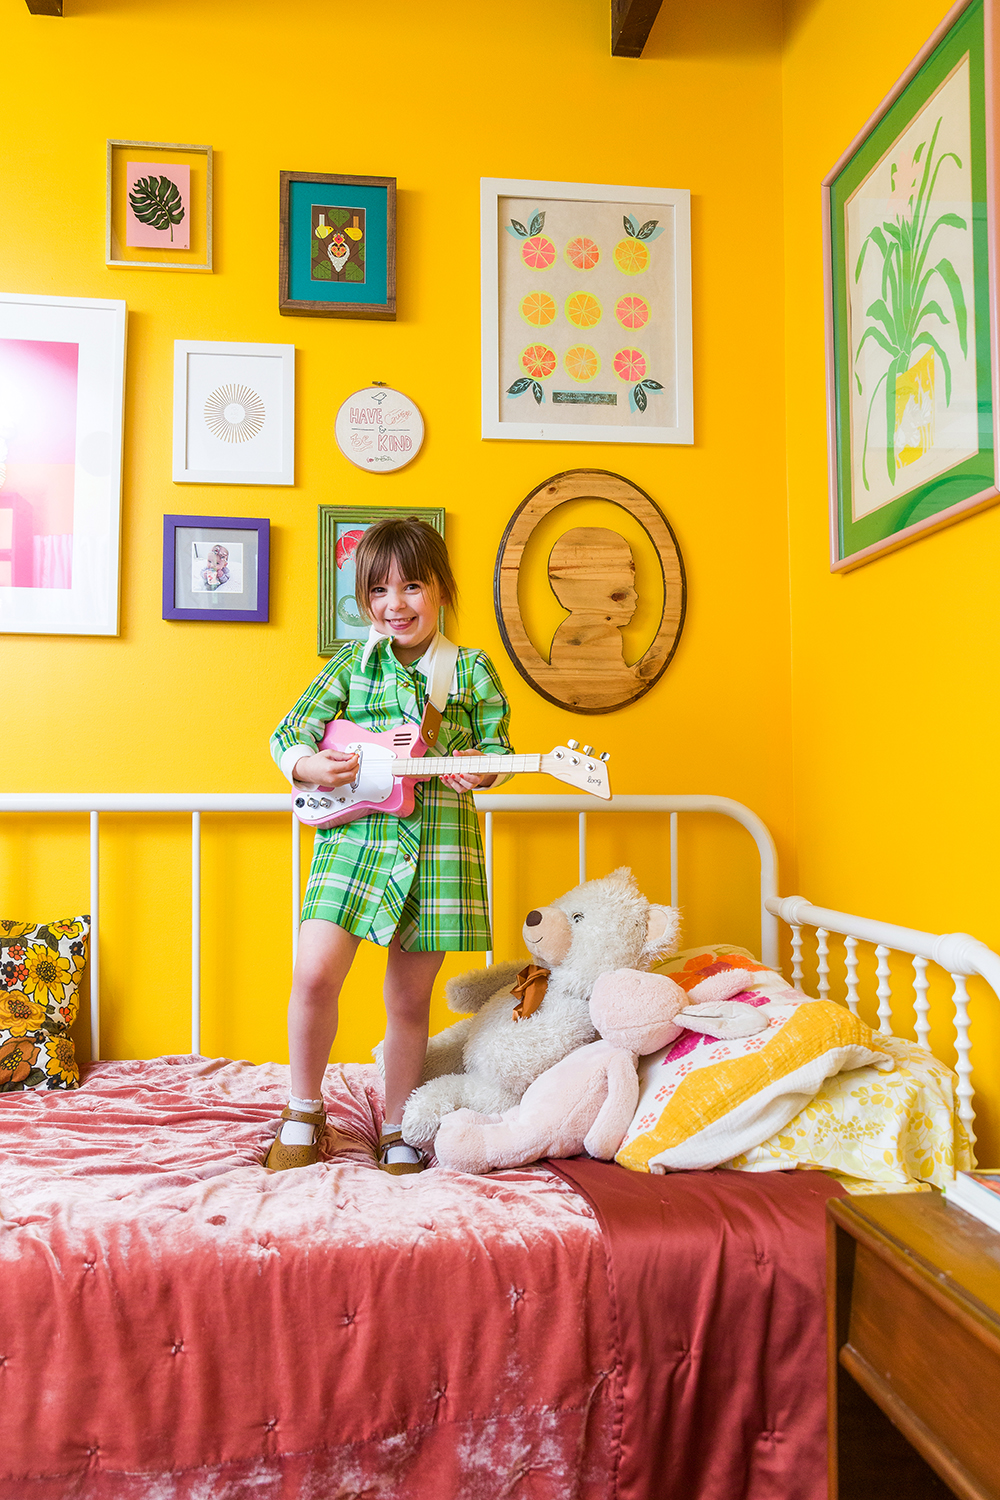 Alice Daniel in colorful green plaid dress stands on her bed playing pink kid's guitar